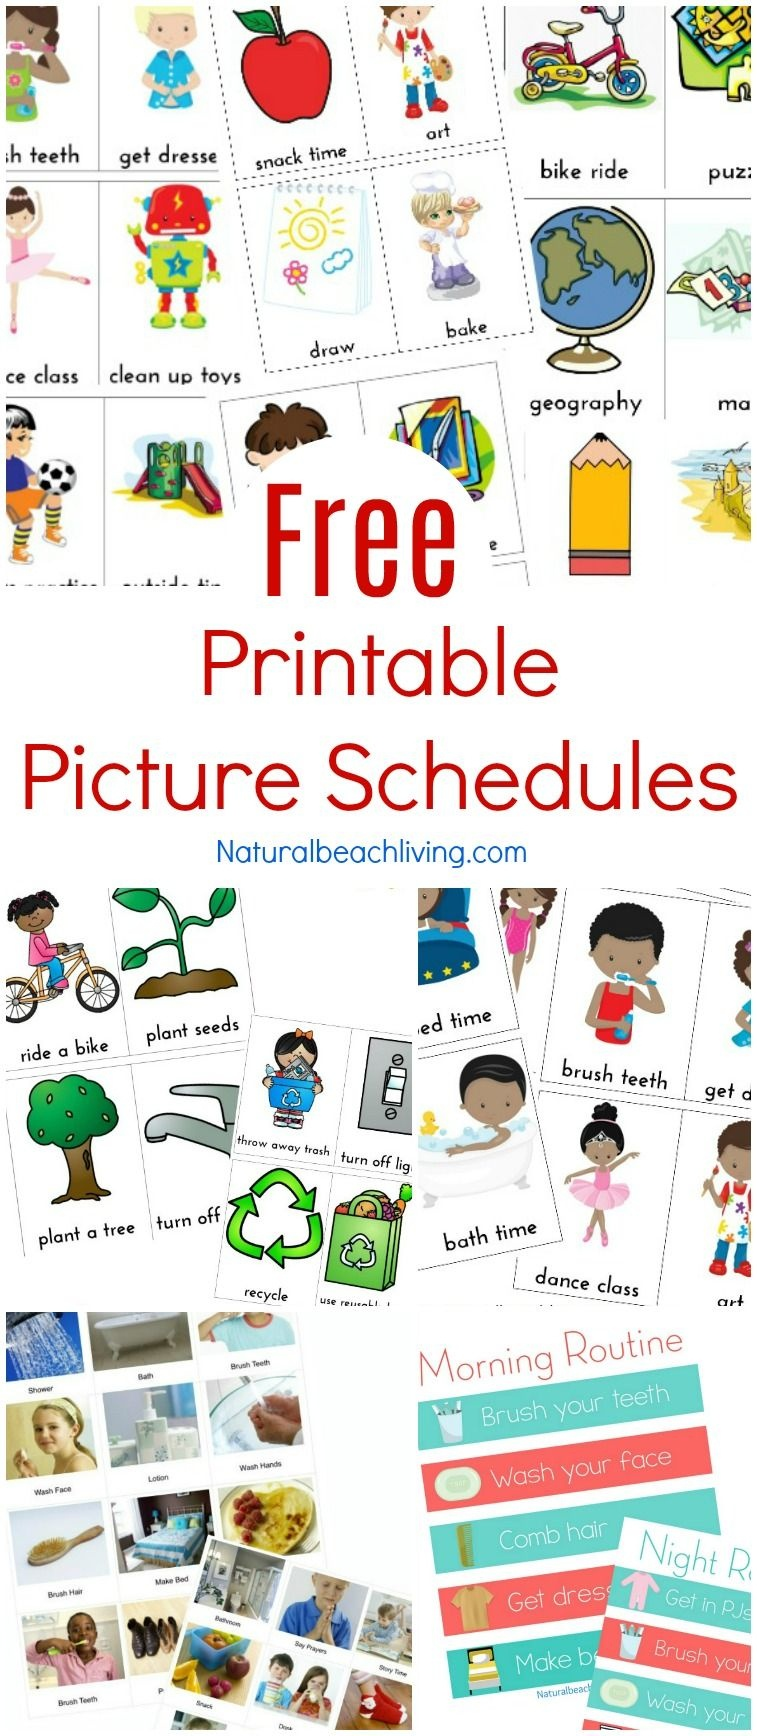 Free Printable Picture Schedule Cards - Visual Schedule Printables - Free Printable Picture Schedule Cards